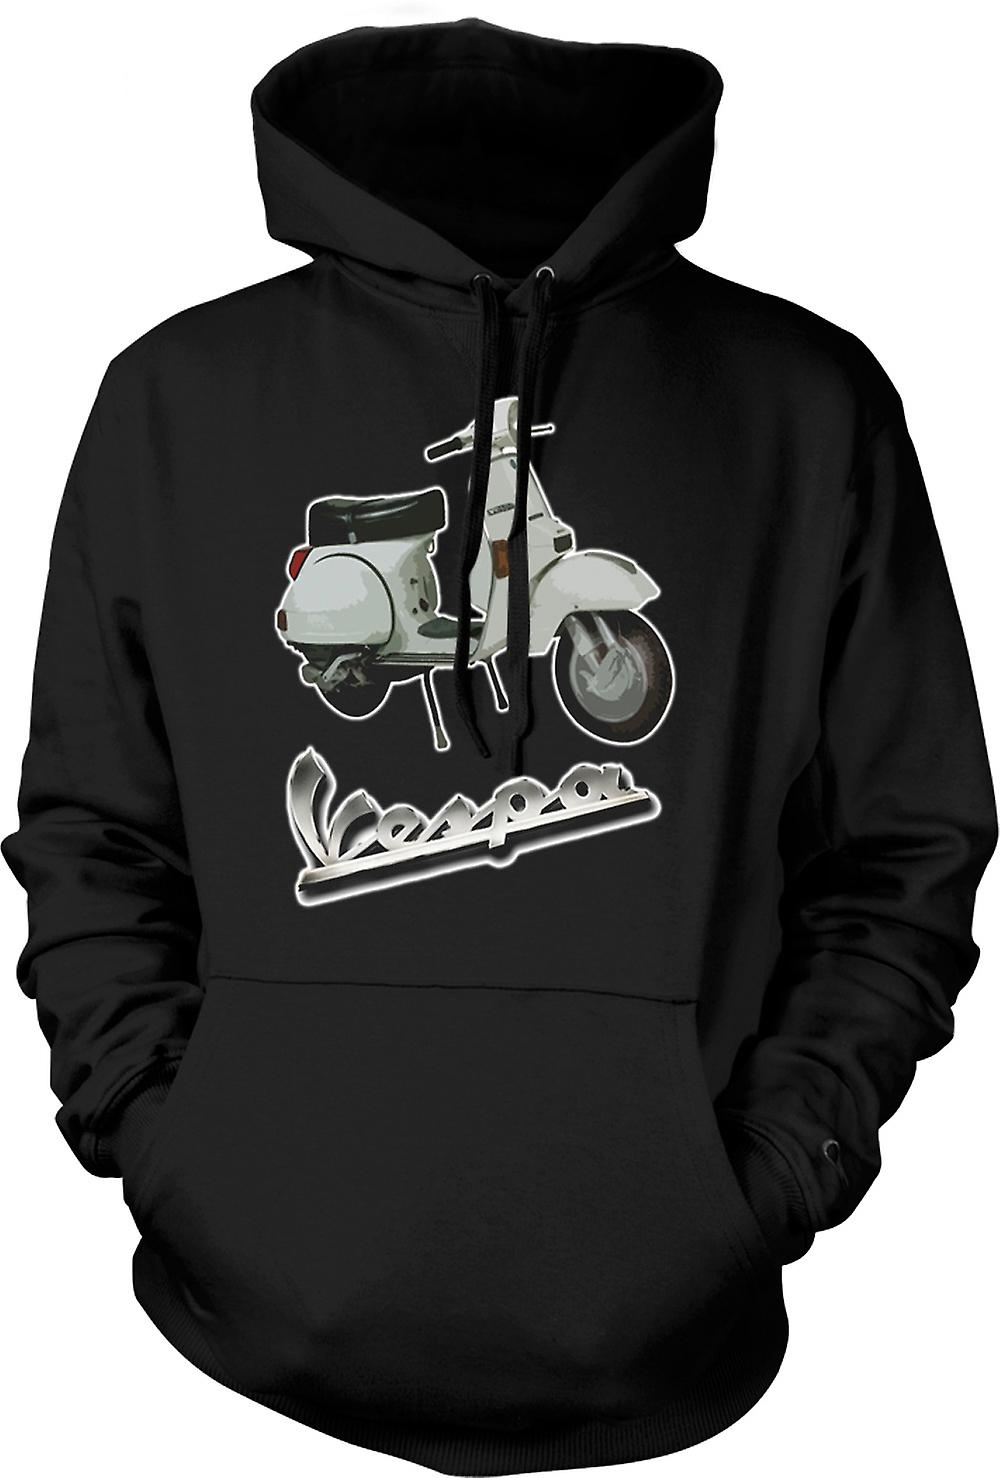 Kids Hoodie - Vespa PX 200 - Classic Scooter